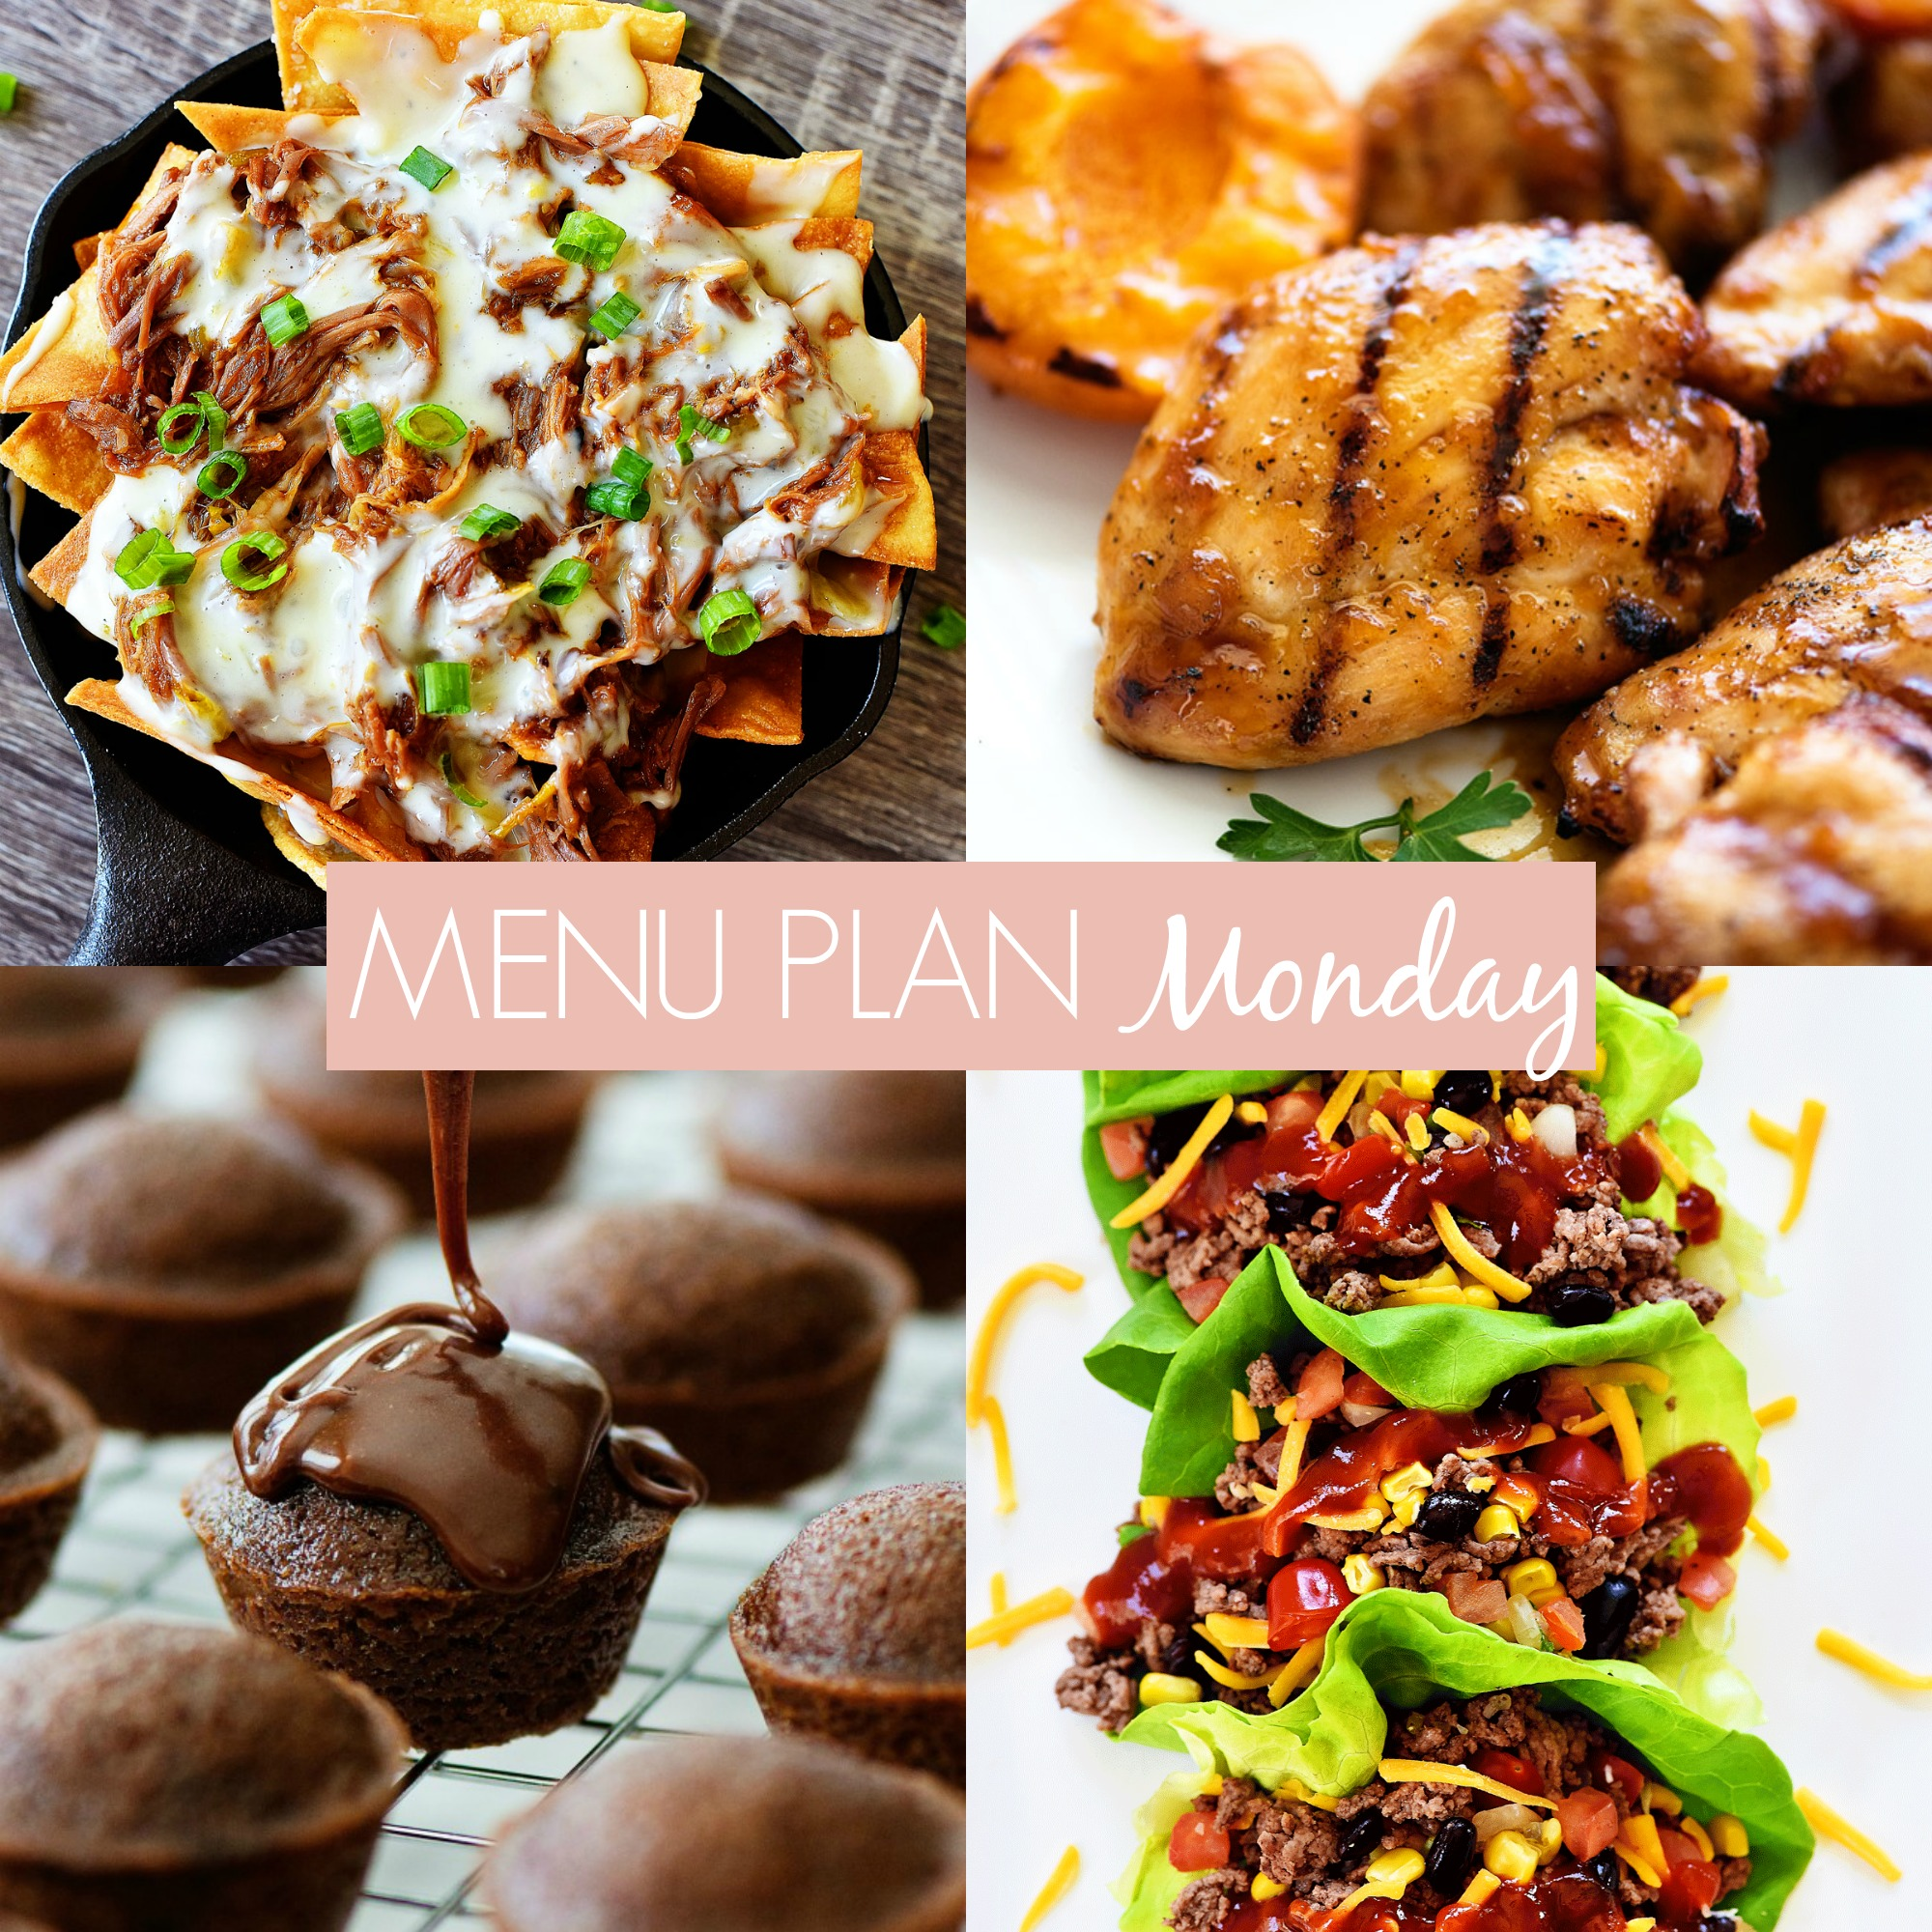 Menu Plan Monday #244